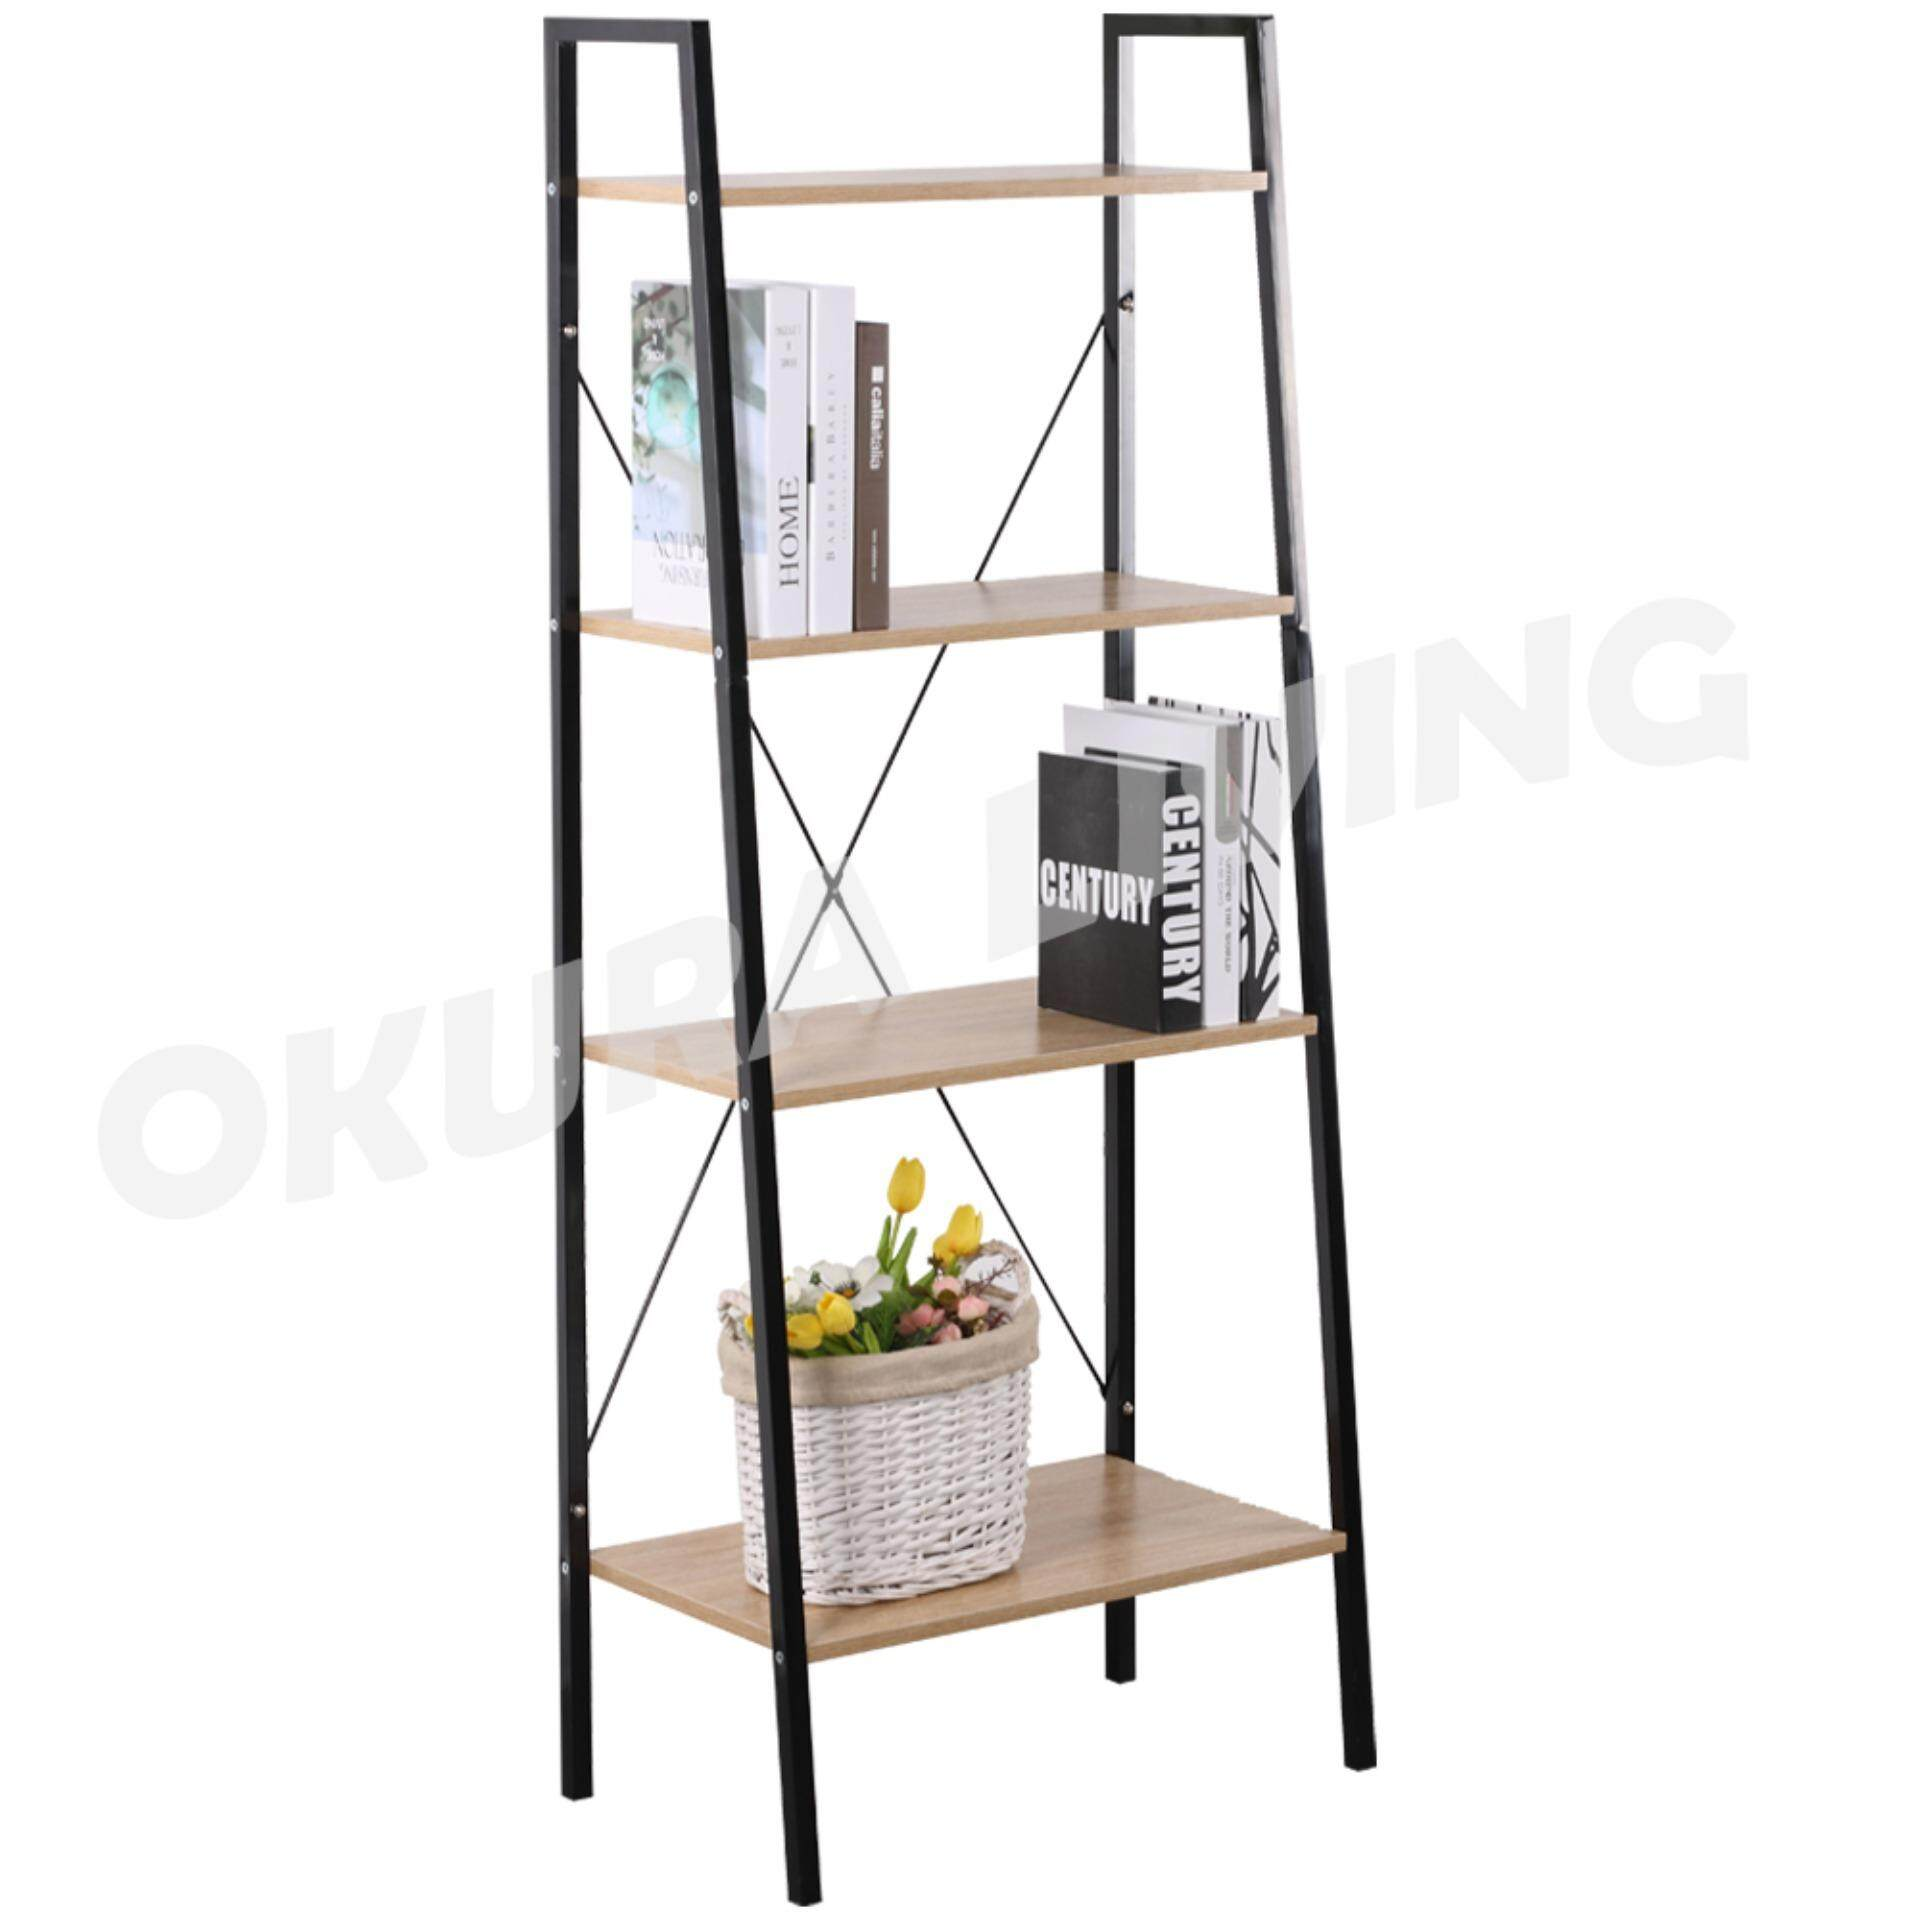 Okura 4 Tier Multipurpose Shelf Home Living Office